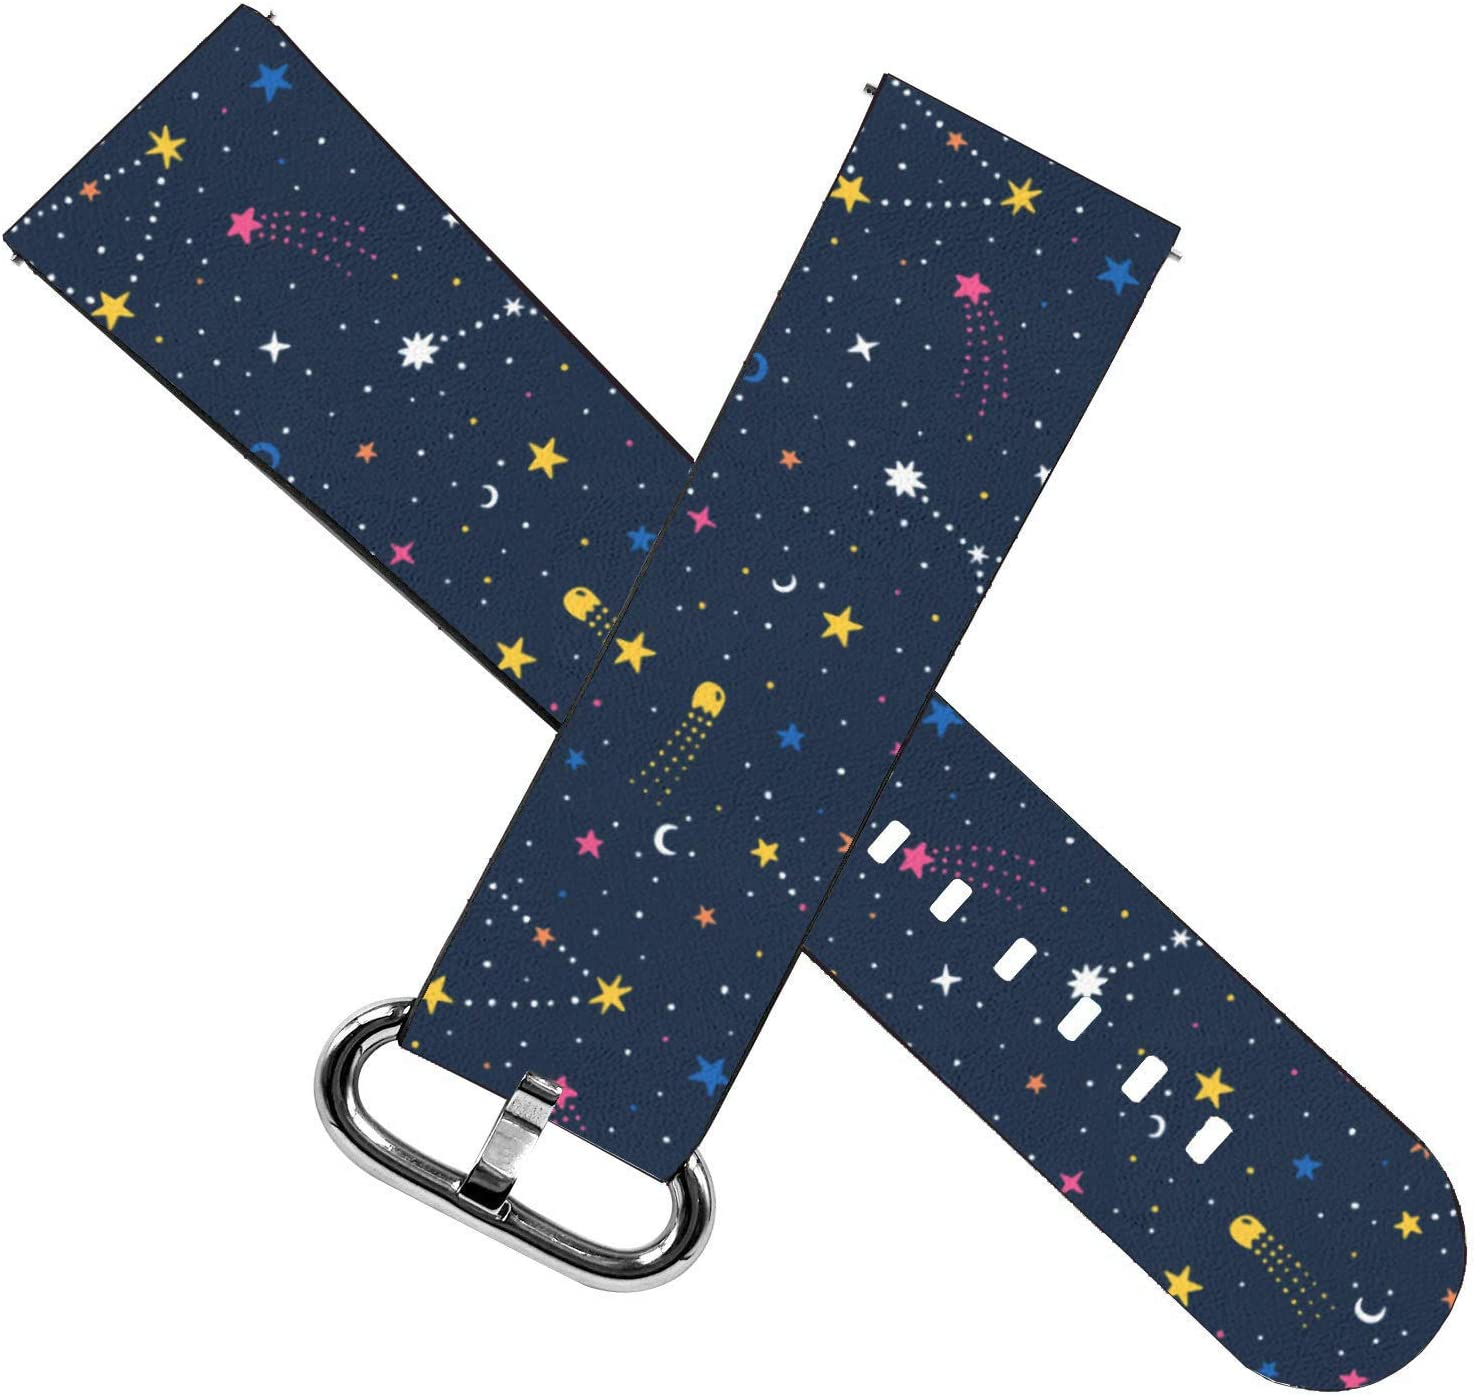 Replacement Leather Strap Printing Wristbands Compatible with Fitbit Versa 2 Cosmic Starry Night Versa//Versa Lite//Versa SE